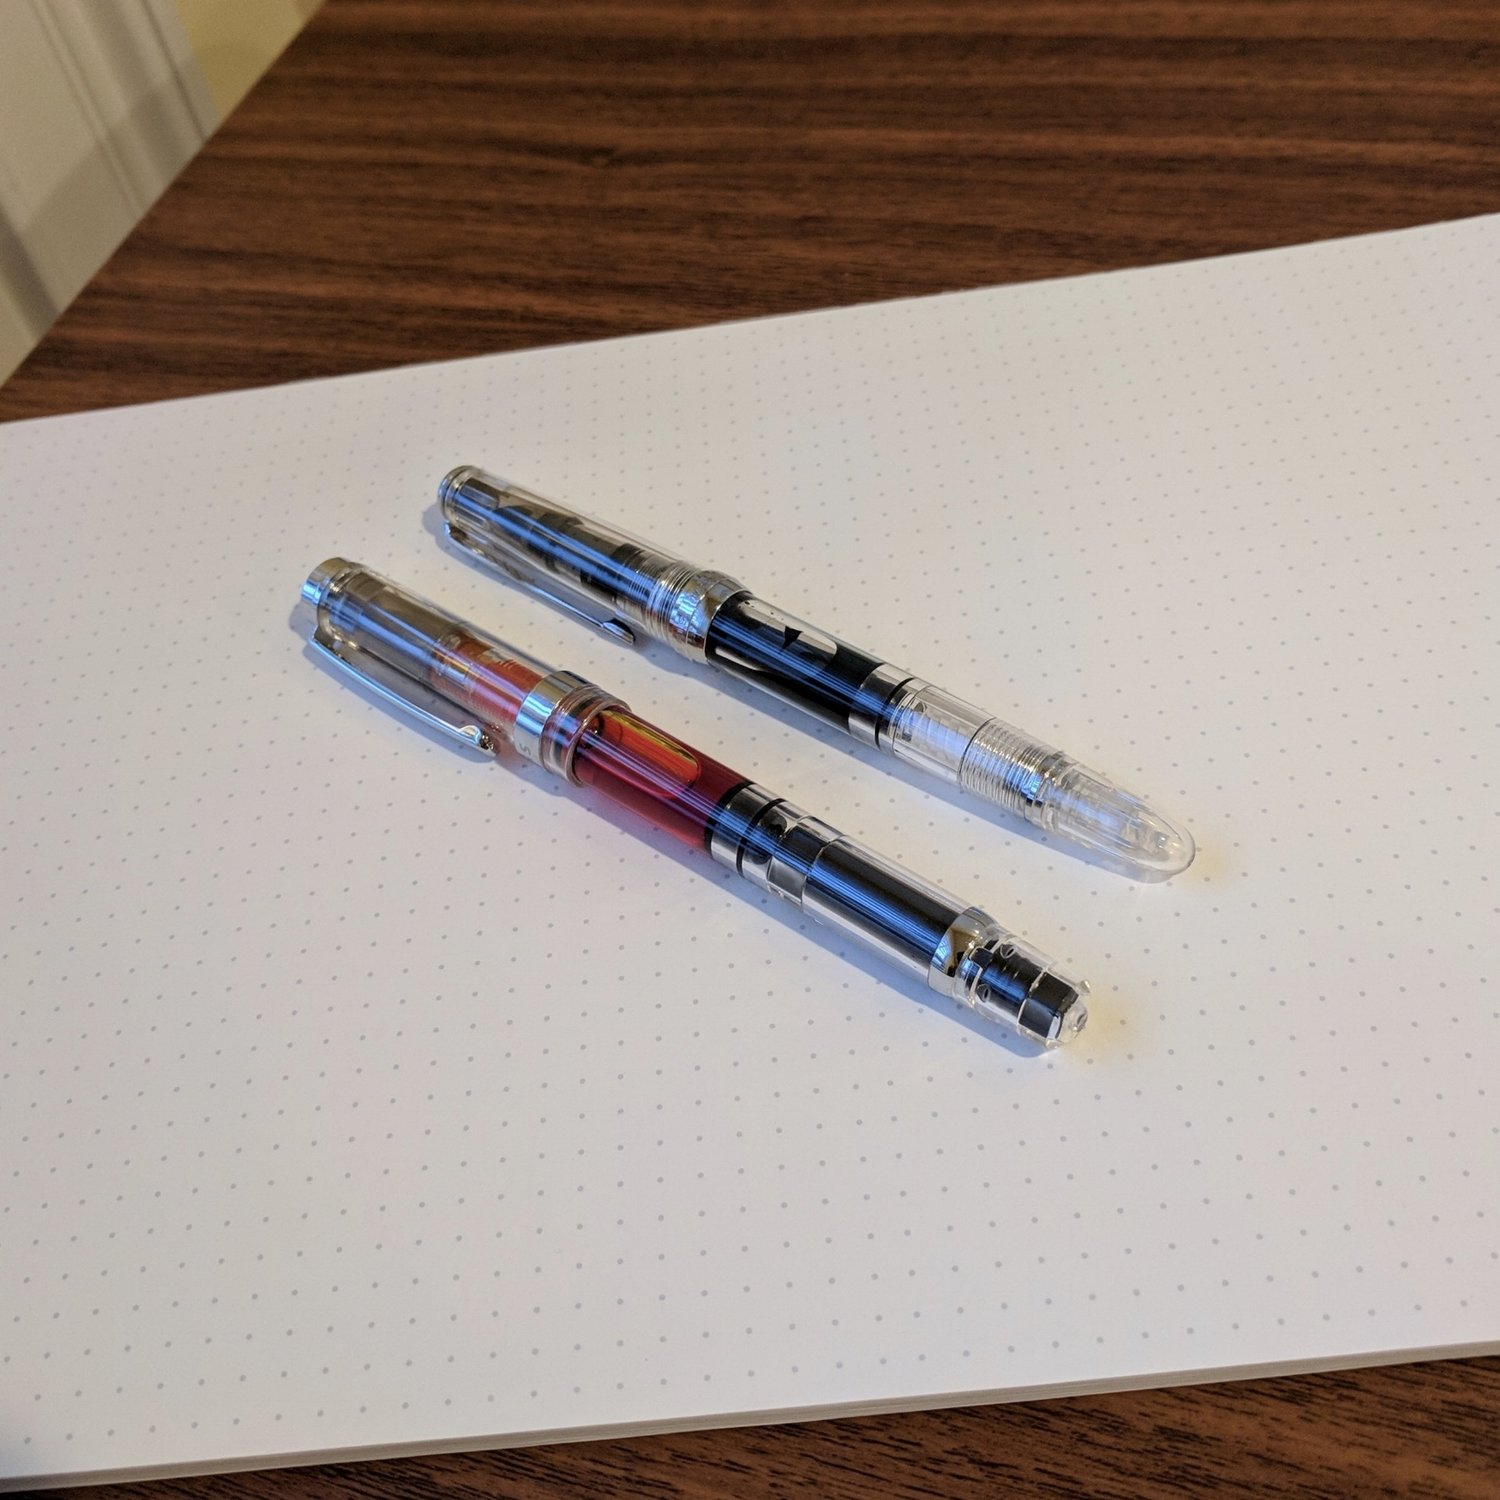 Initial Impressions: Wing Sung 618 and Wing Sung 698 Piston Fillers